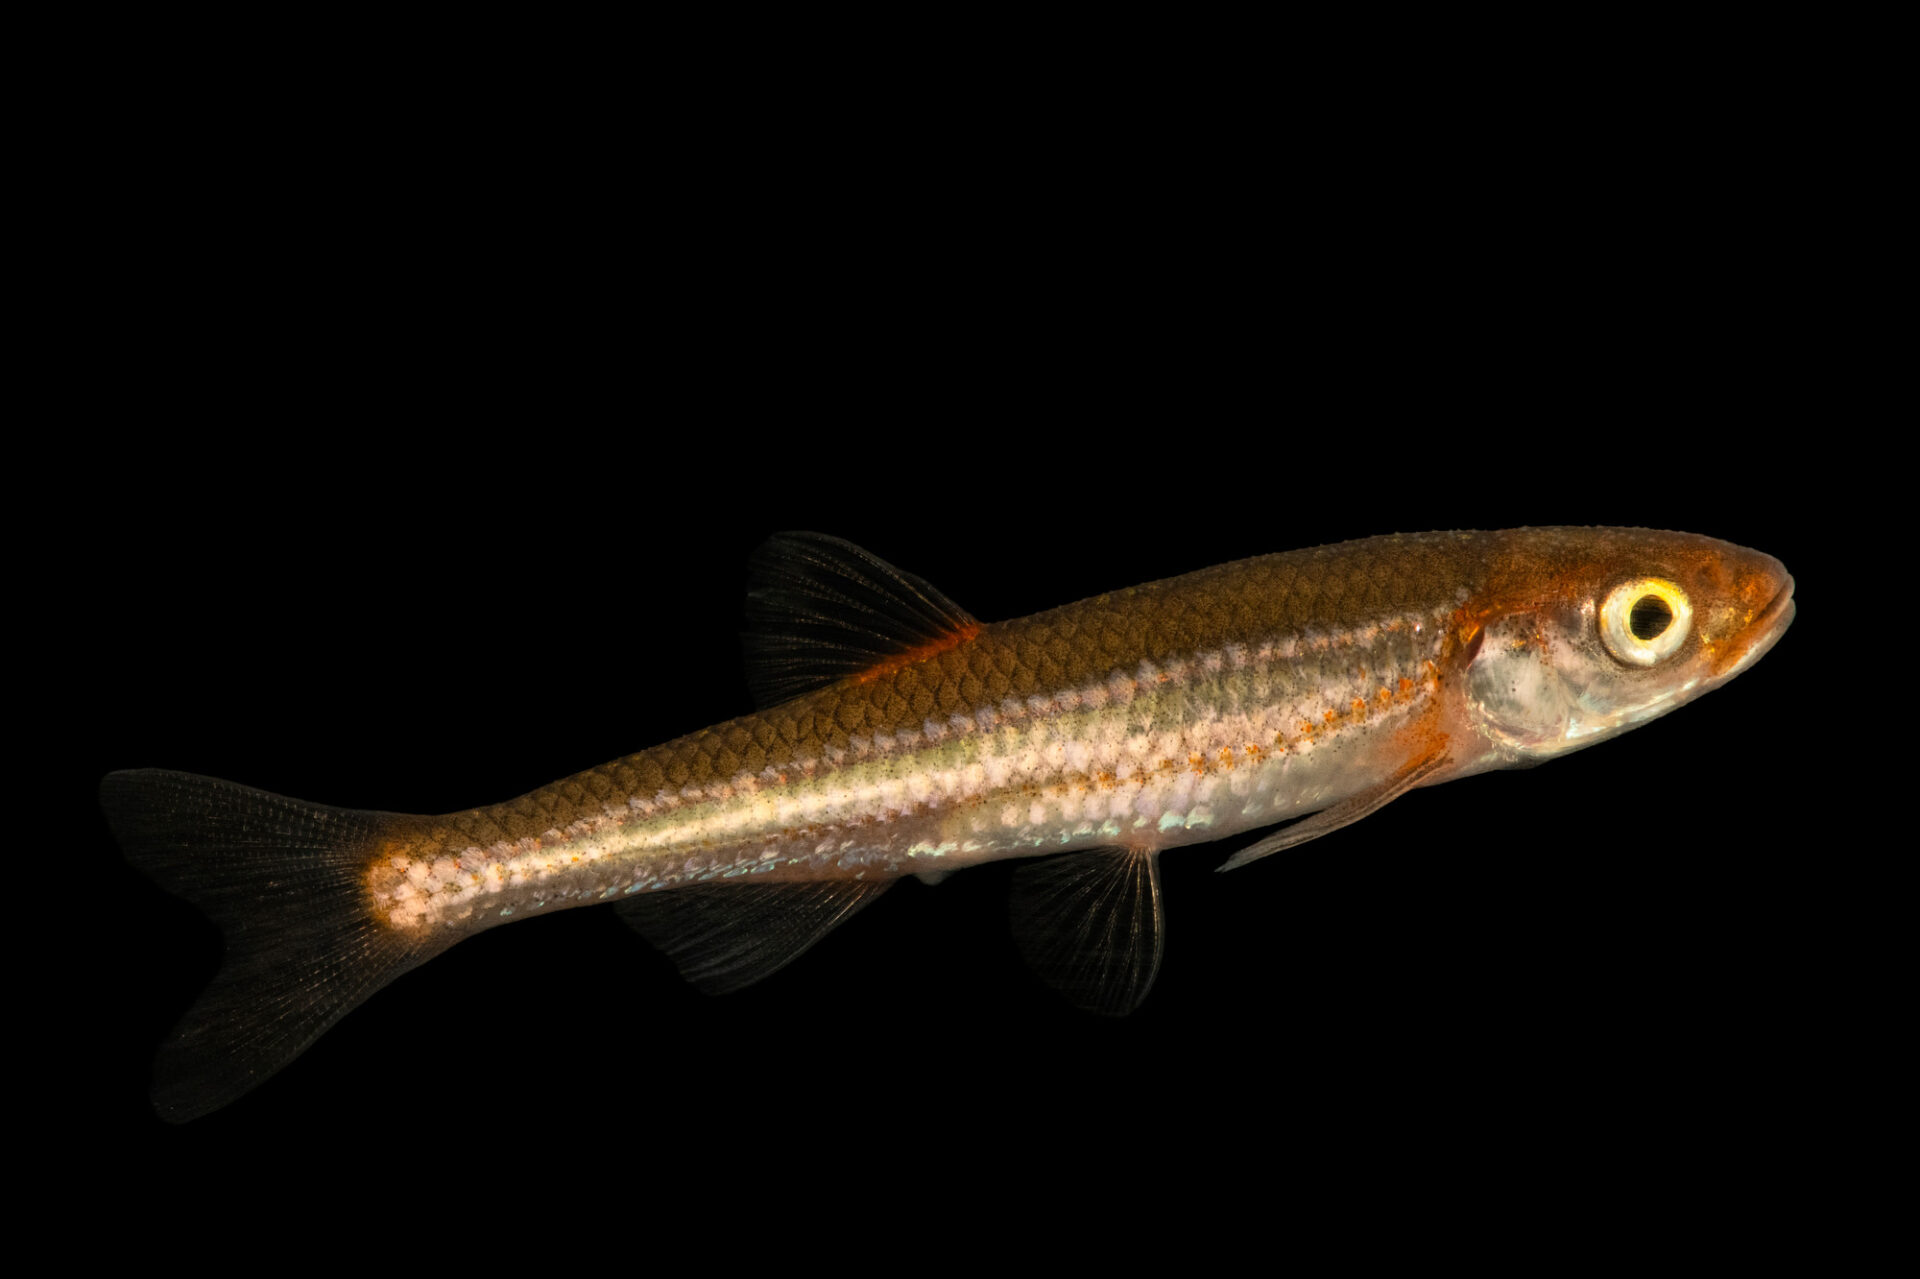 Photo: A carmine shiner (Notropis percobromus) at the Oklahoma Aquarium in Jenks, OK.